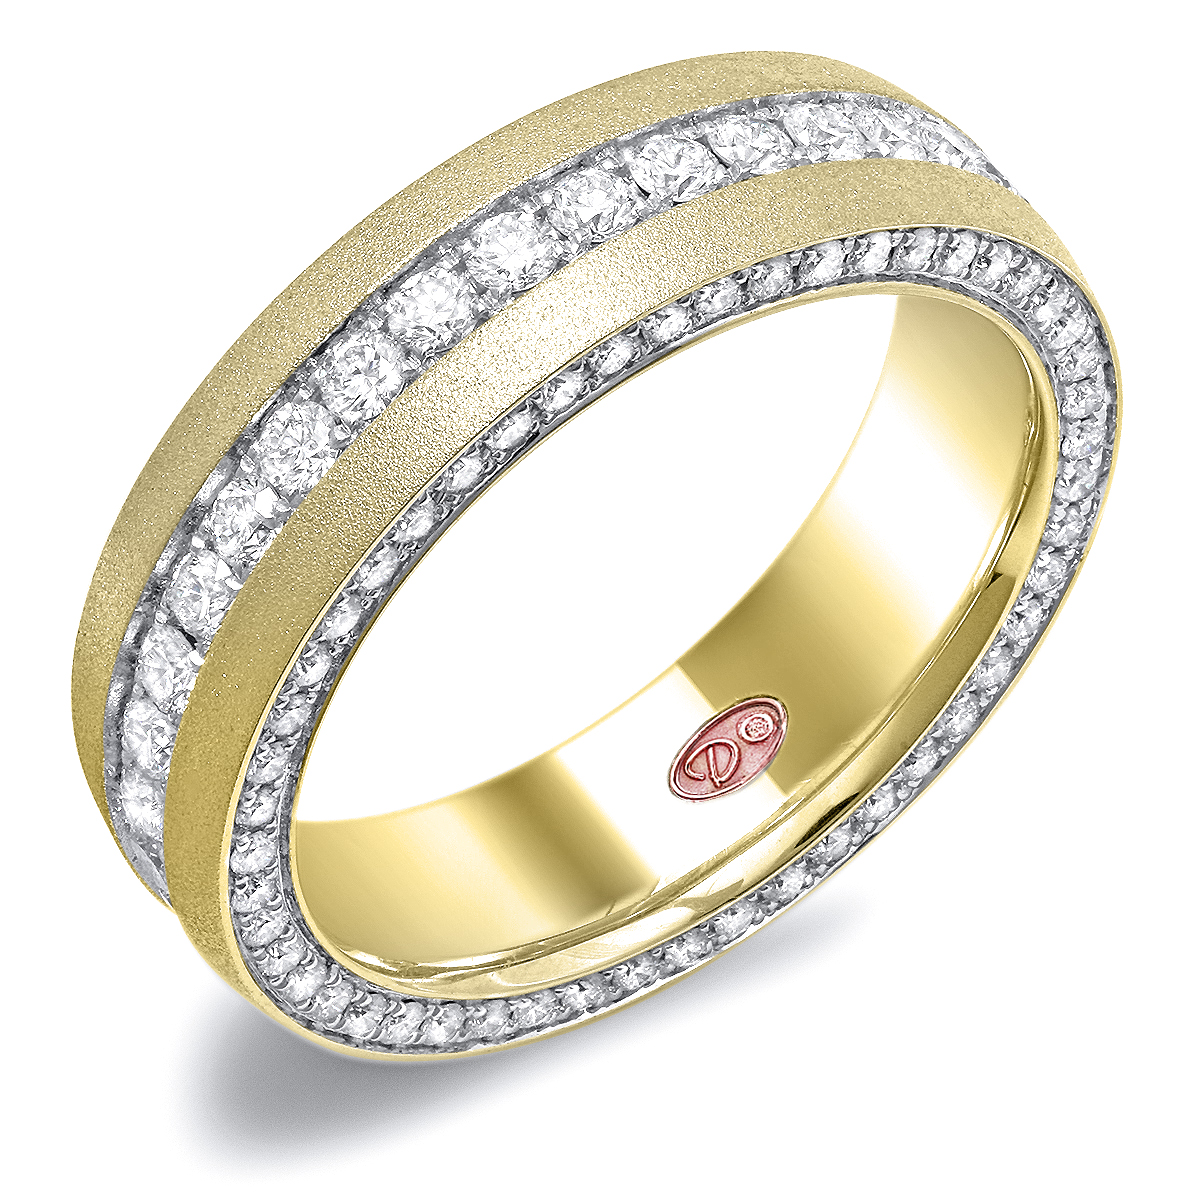 Designer Engagement Jewelry and Rings - Demarco Bridal Jewelry